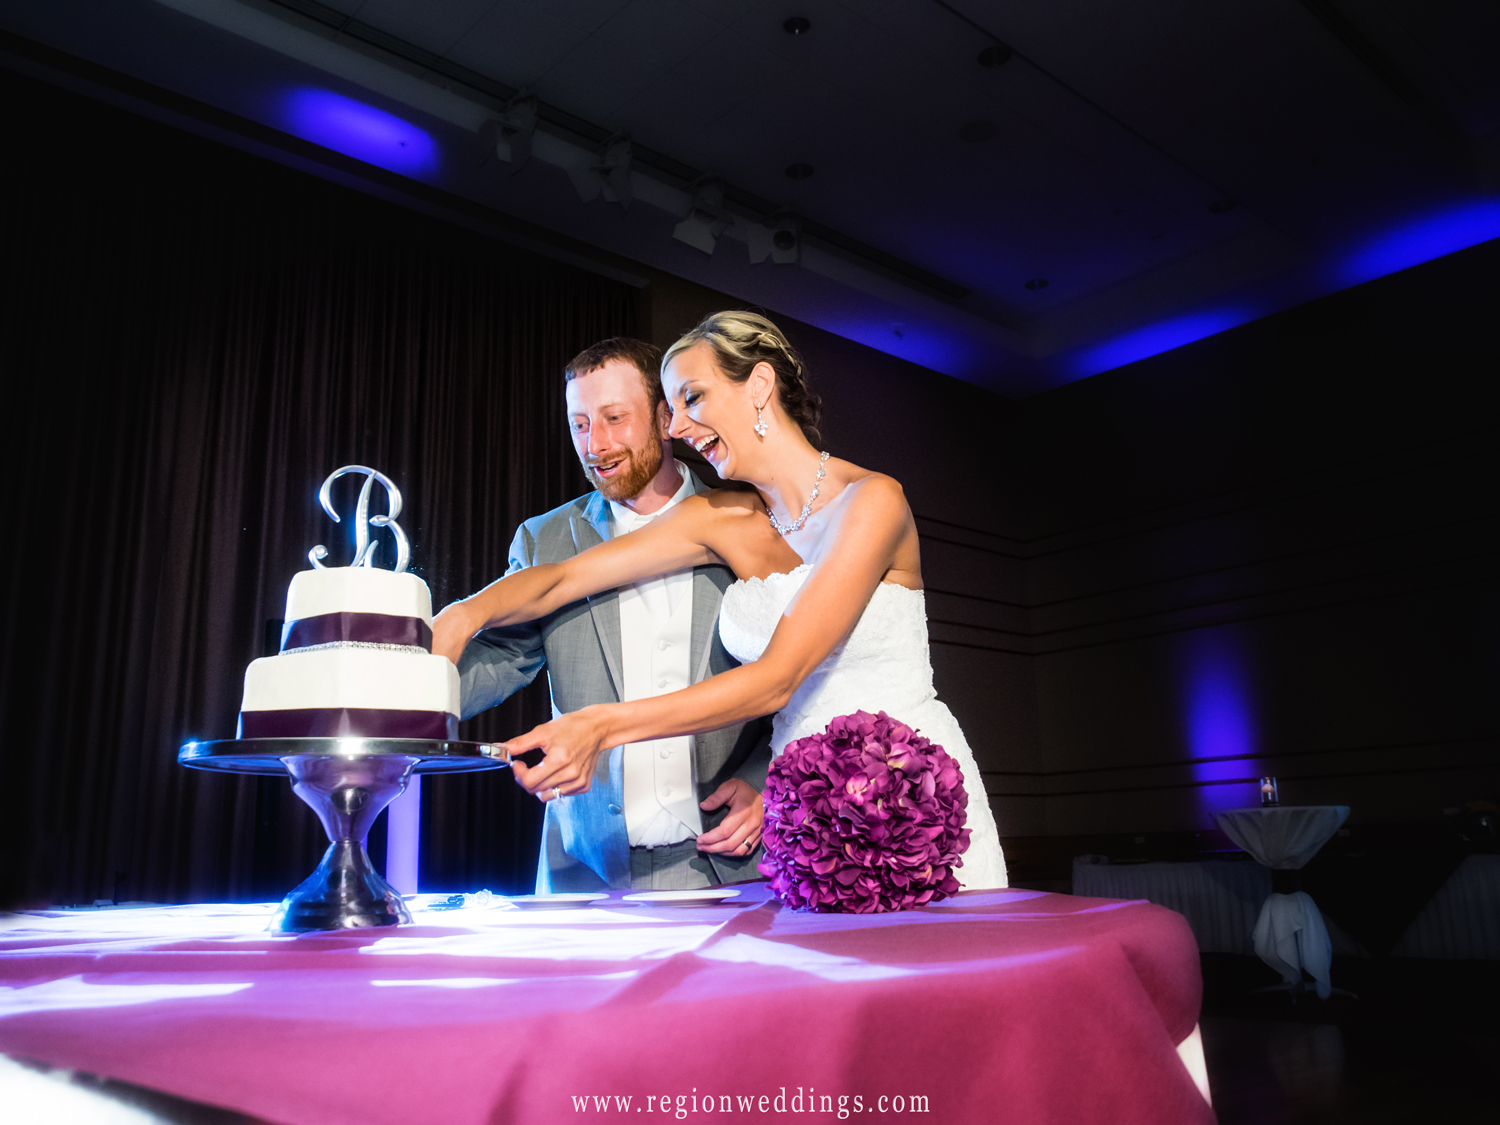 The bride and groom cut their plum colored wedding cake.